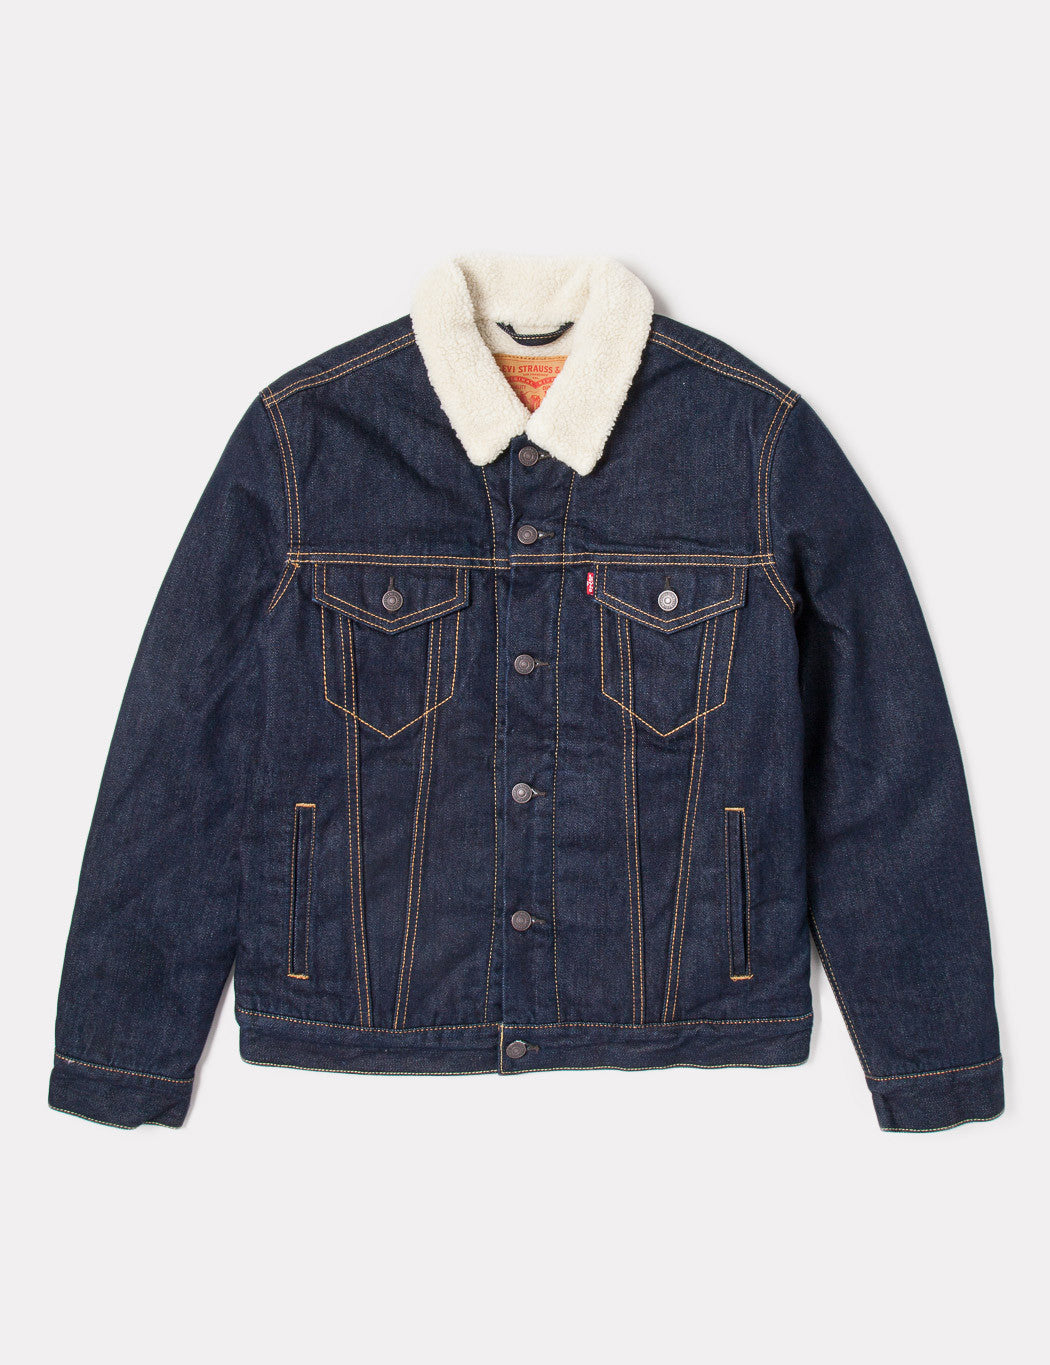 Levis Good Sherpa Trucker - Juniper Rinse